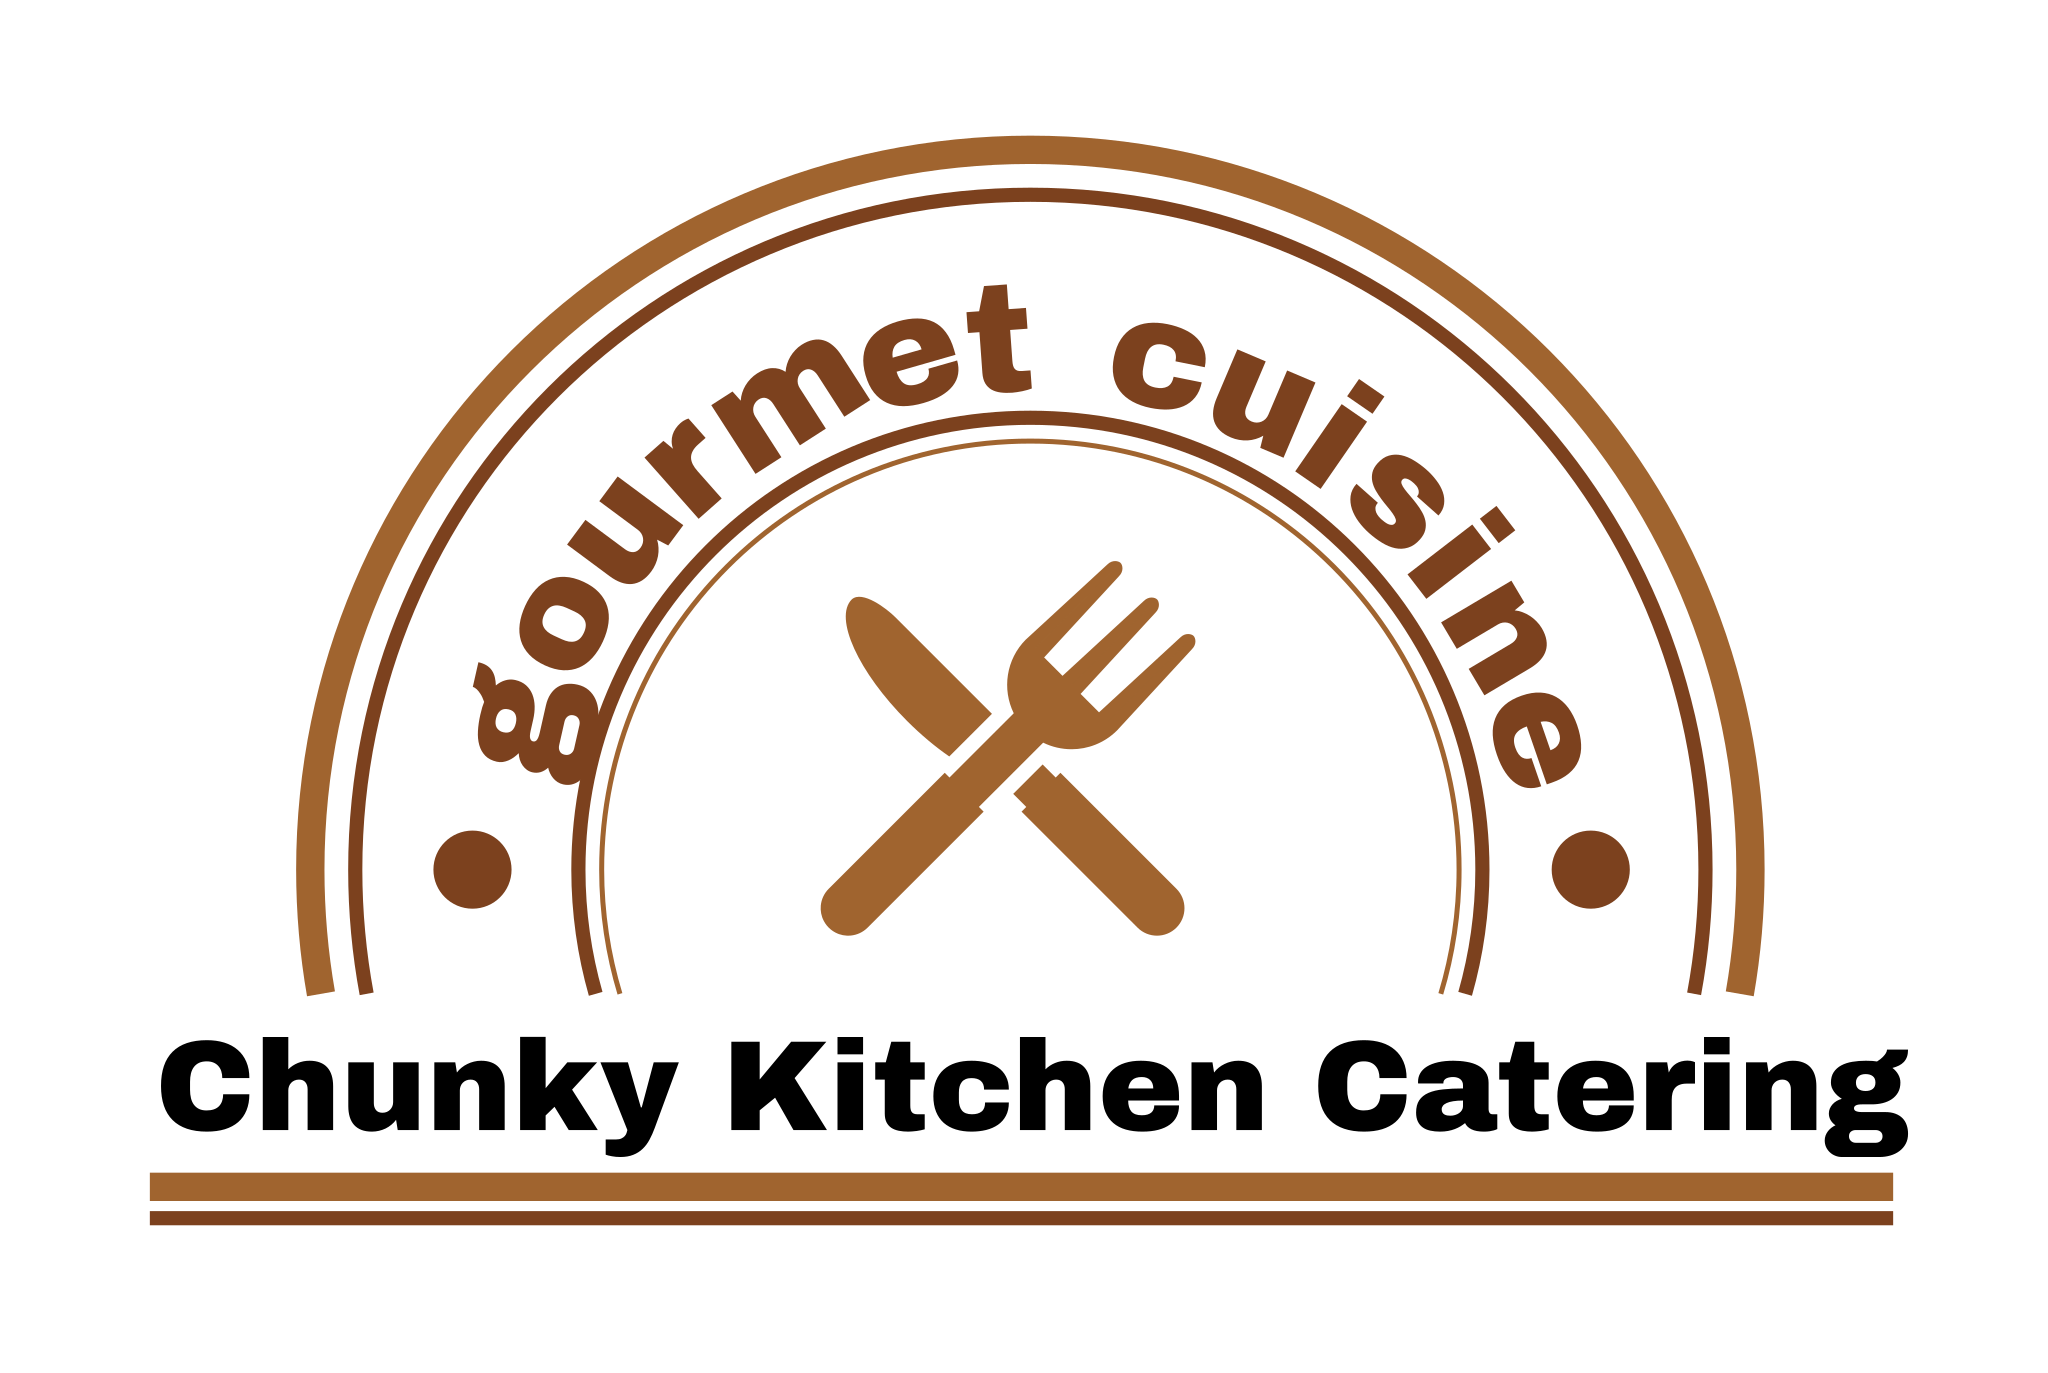 Chunky Kitchen Catering